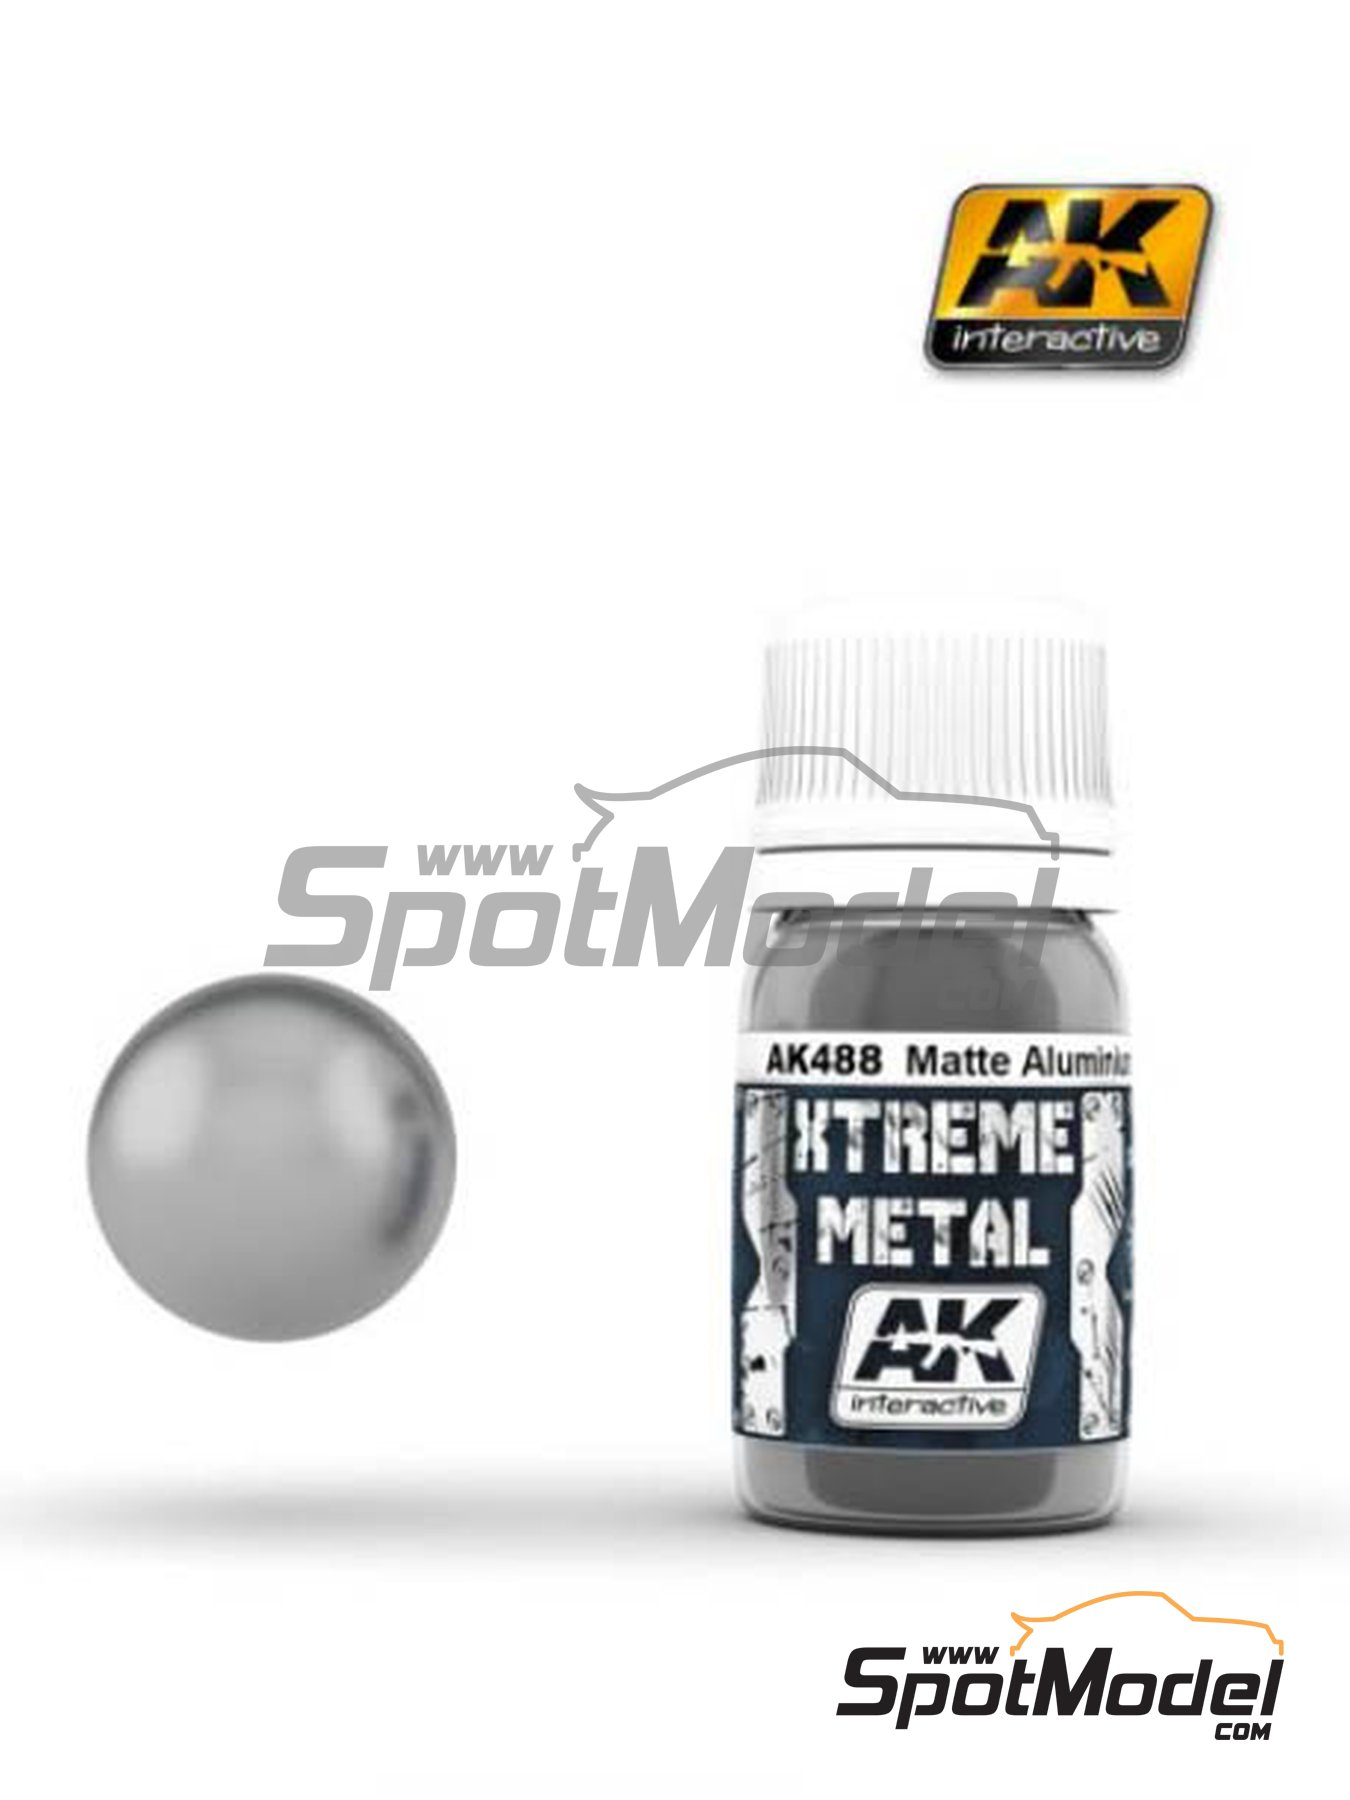 Matte aluminium | Xtreme metal paint manufactured by AK Interactive (ref. AK-488) image